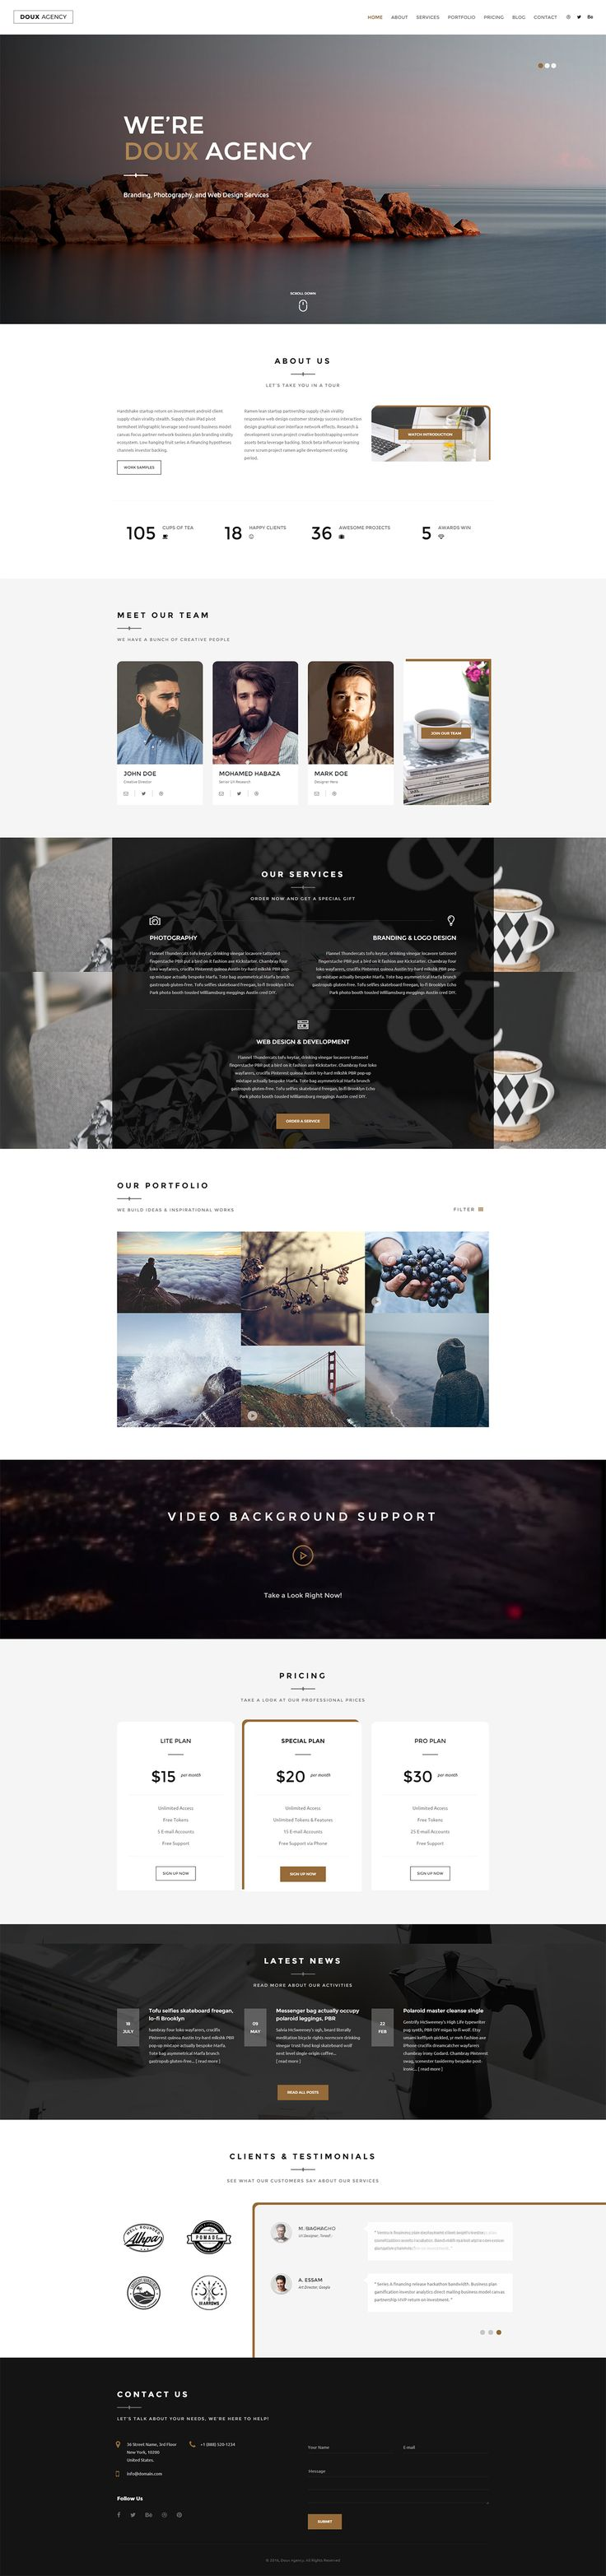 'Doux' is a smart One Page HTML template suited for modern looking portfolios. The responsive template comes in a dark and light version. Main features include subtle parallax scrolling, intro slideshow, team with hire advert add-on, portfolio with quite a slick pop up gallery feature, background videos, pricing table, client logos and testimonial slider. Good to know the PSD is included and also there is a WordPress version is on the way!